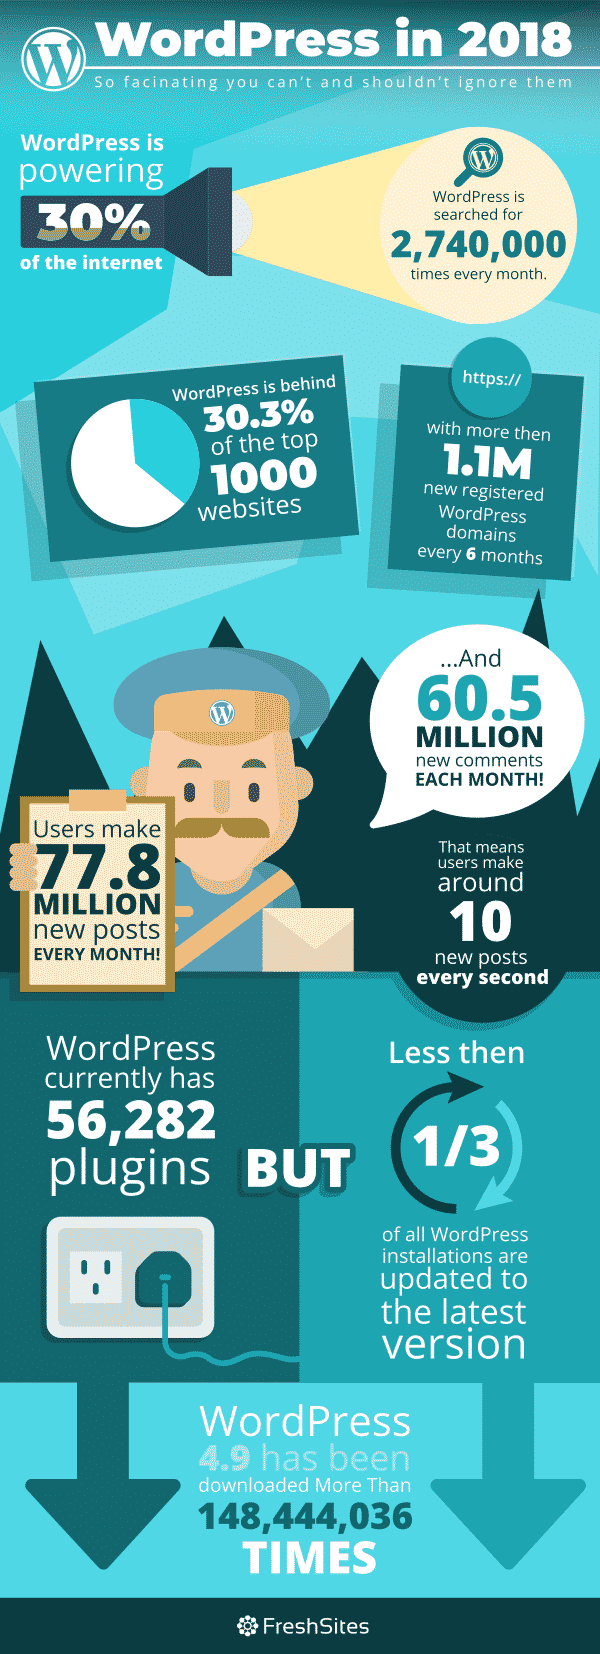 WordPress in 2018 Infographic